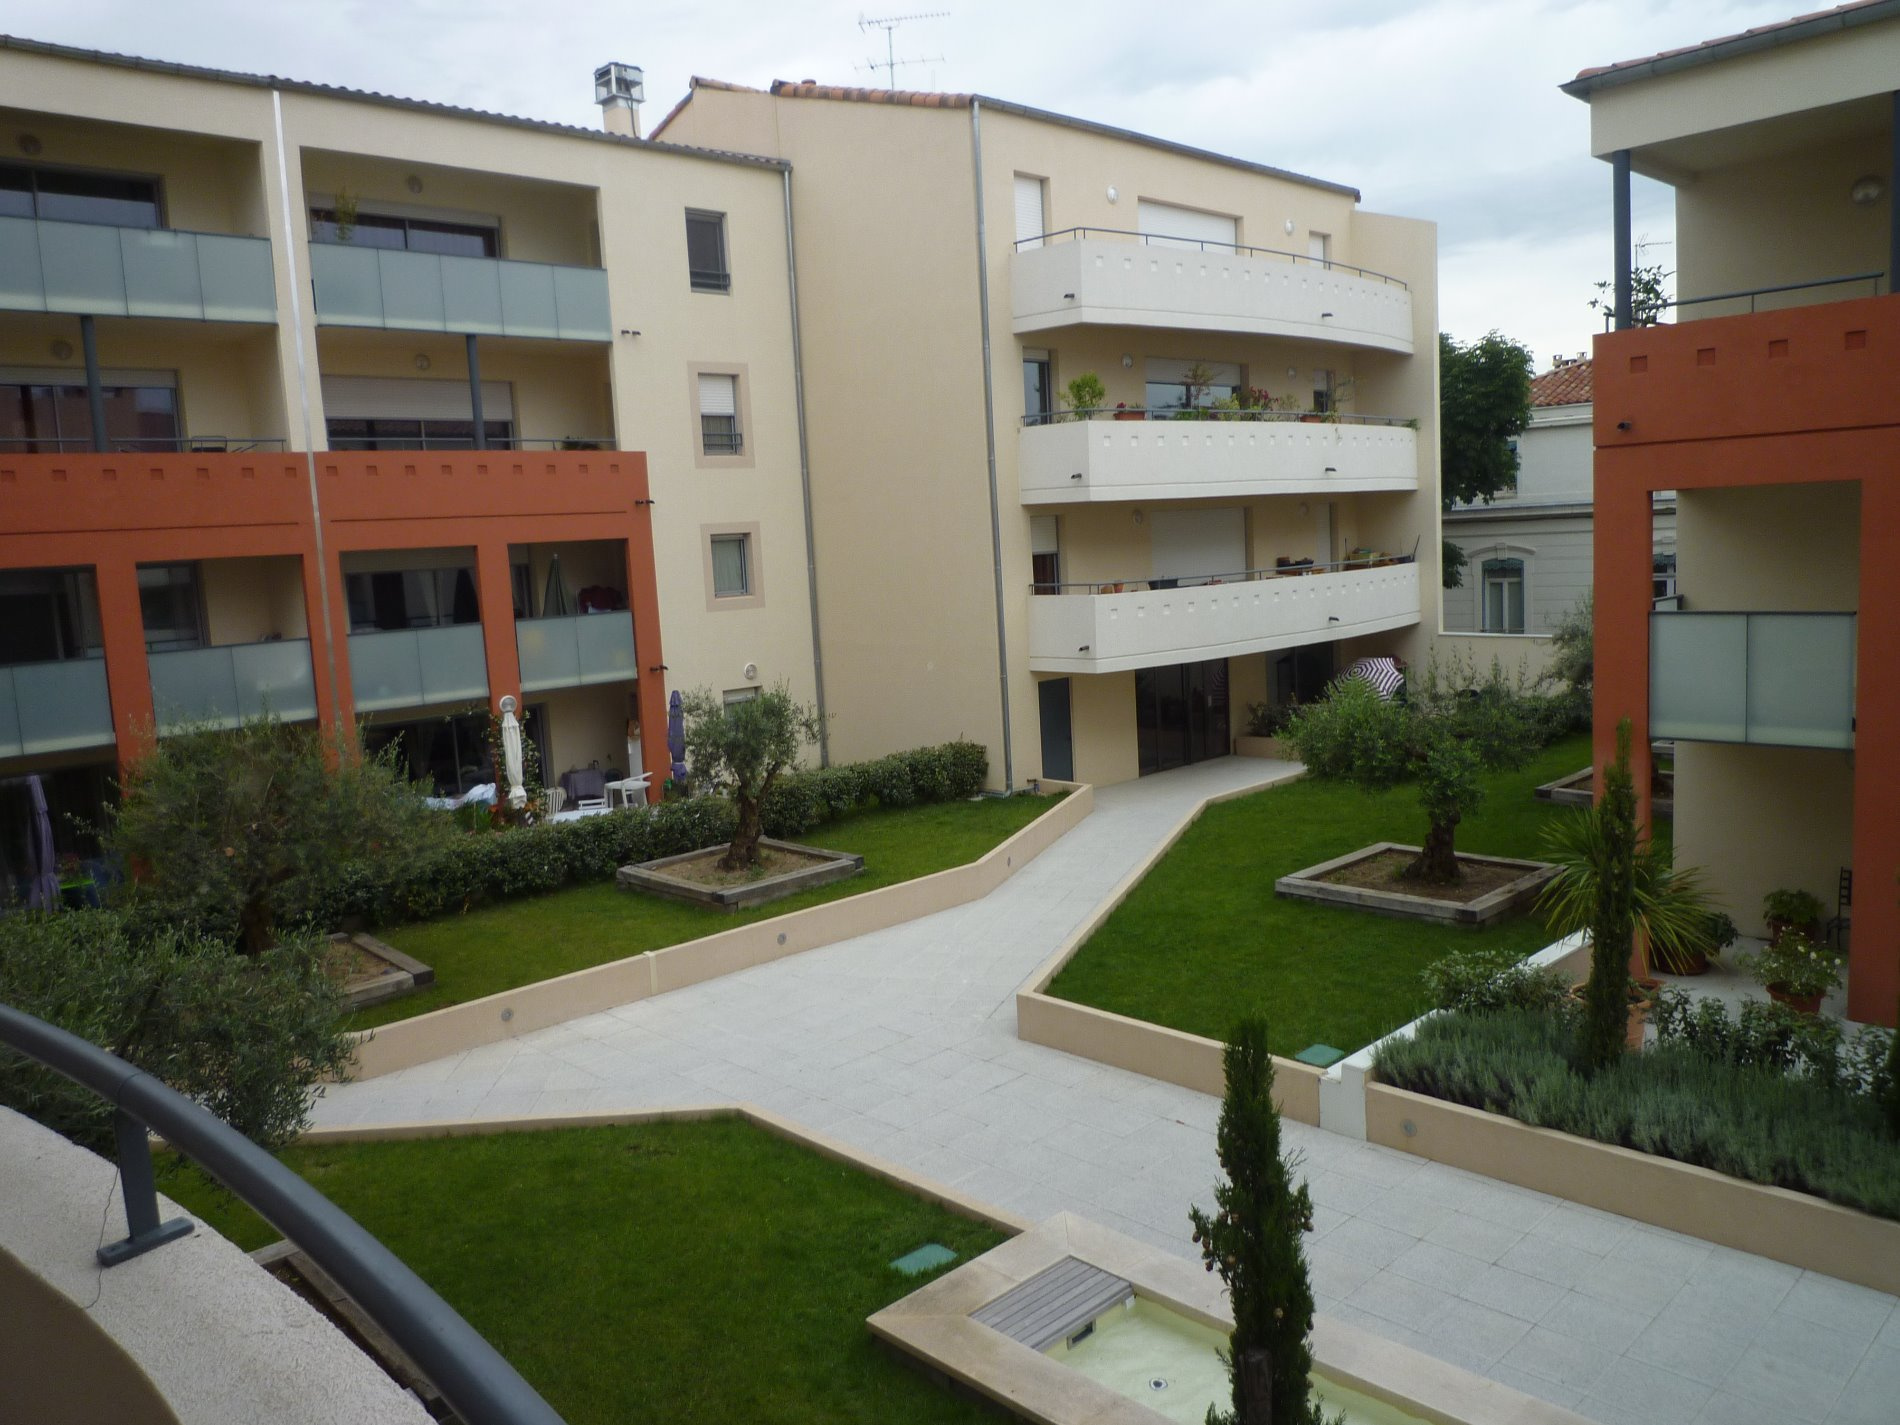 Agence tissot immobilier nimes vente location gestion for Site immobilier vente